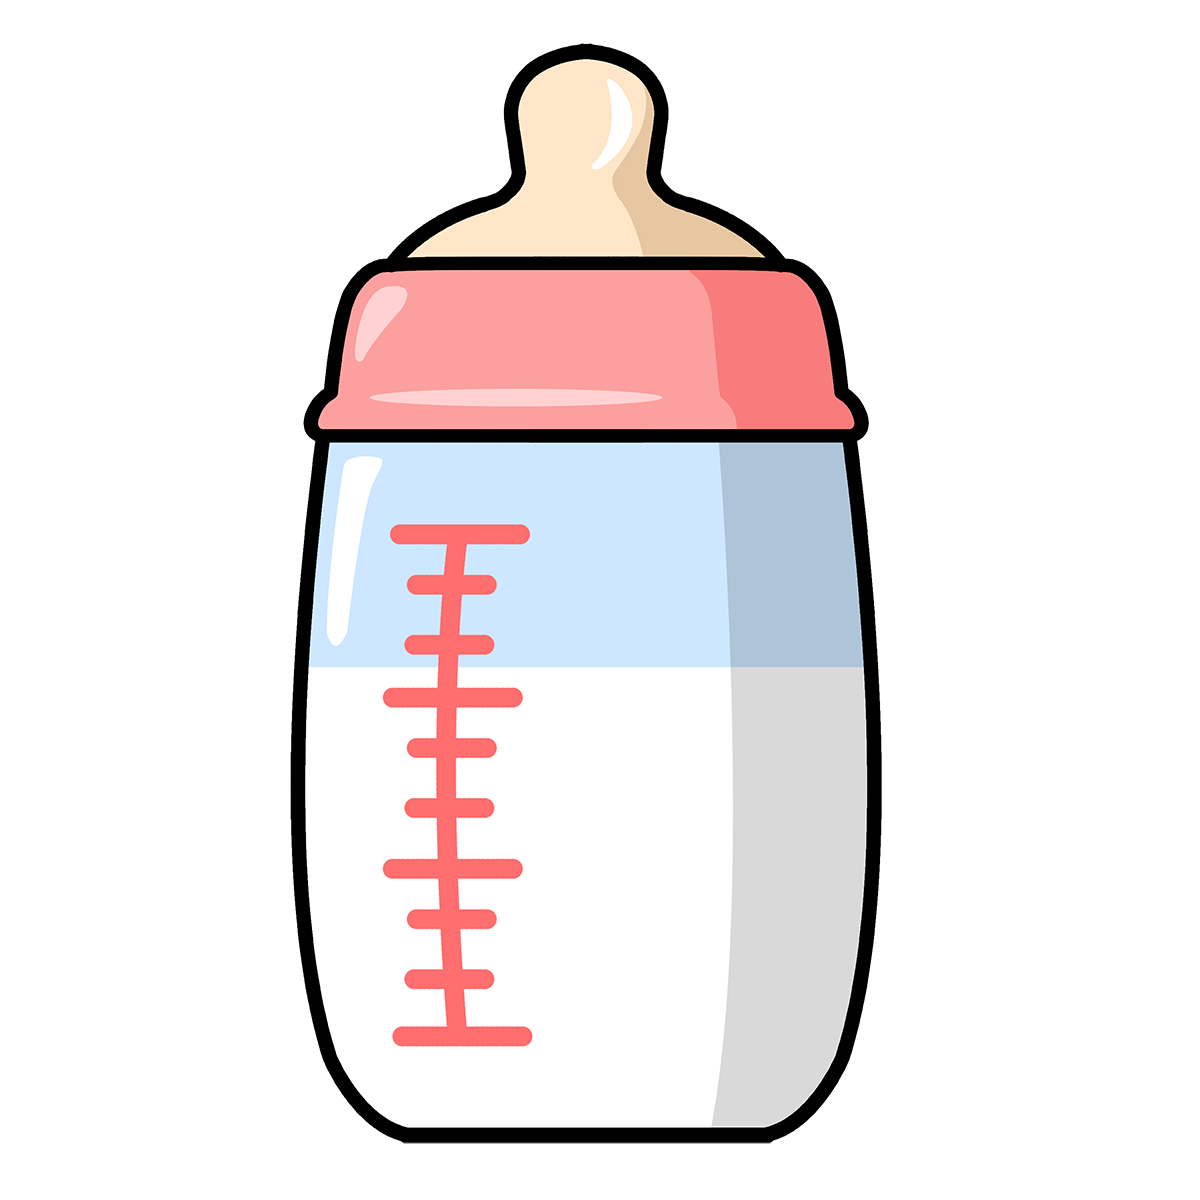 1200x1200 Free To Use Amp Public Domain Baby Bottle Clip Art